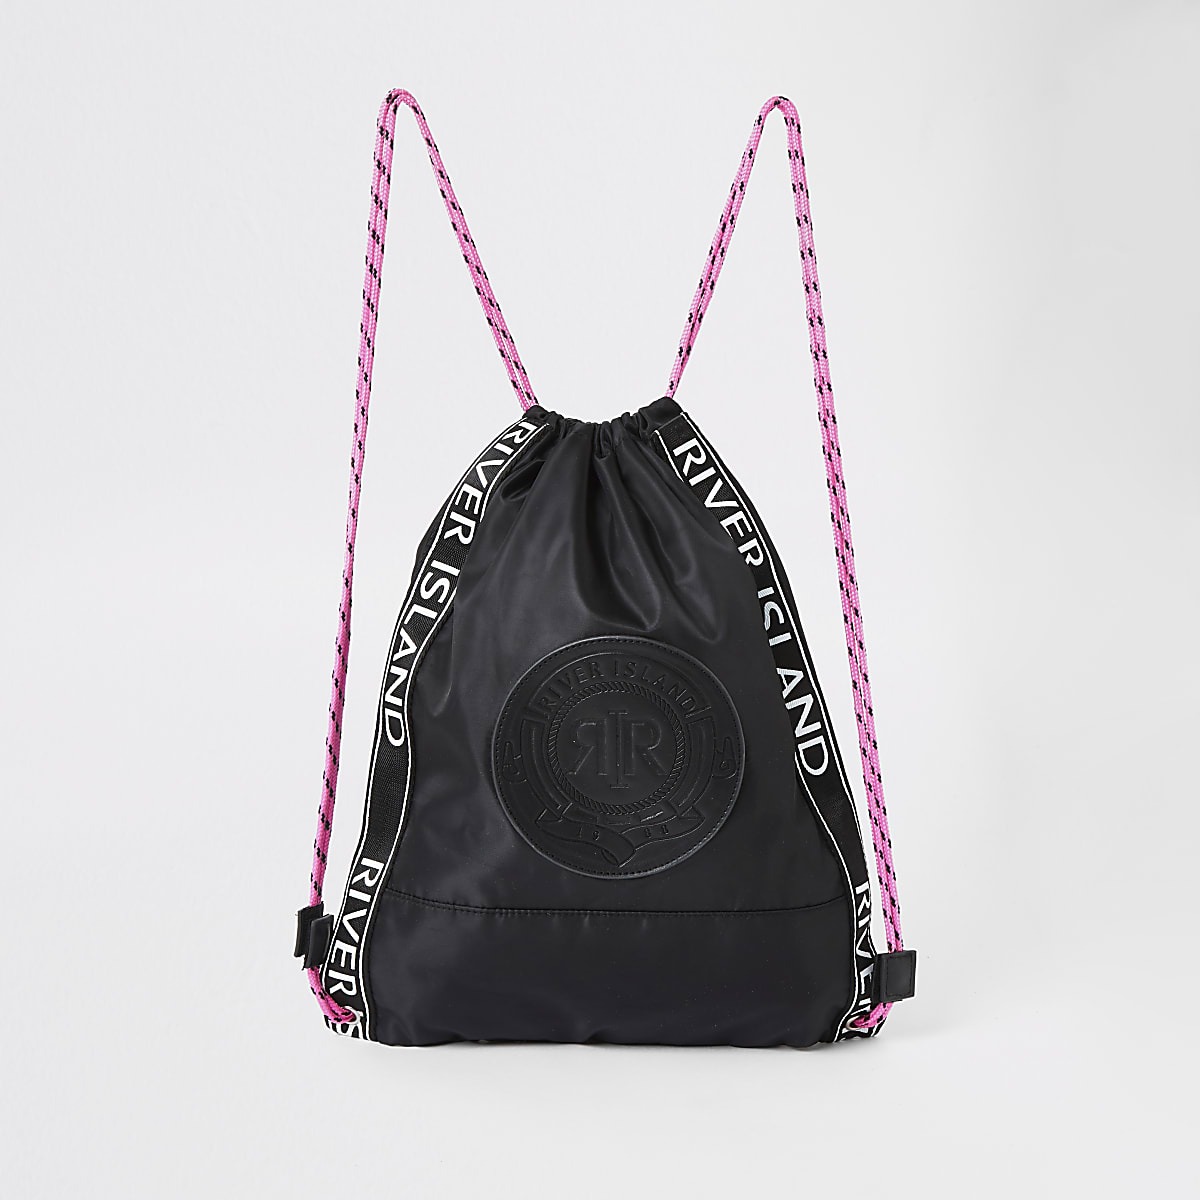 Girls black RI drawstring bag